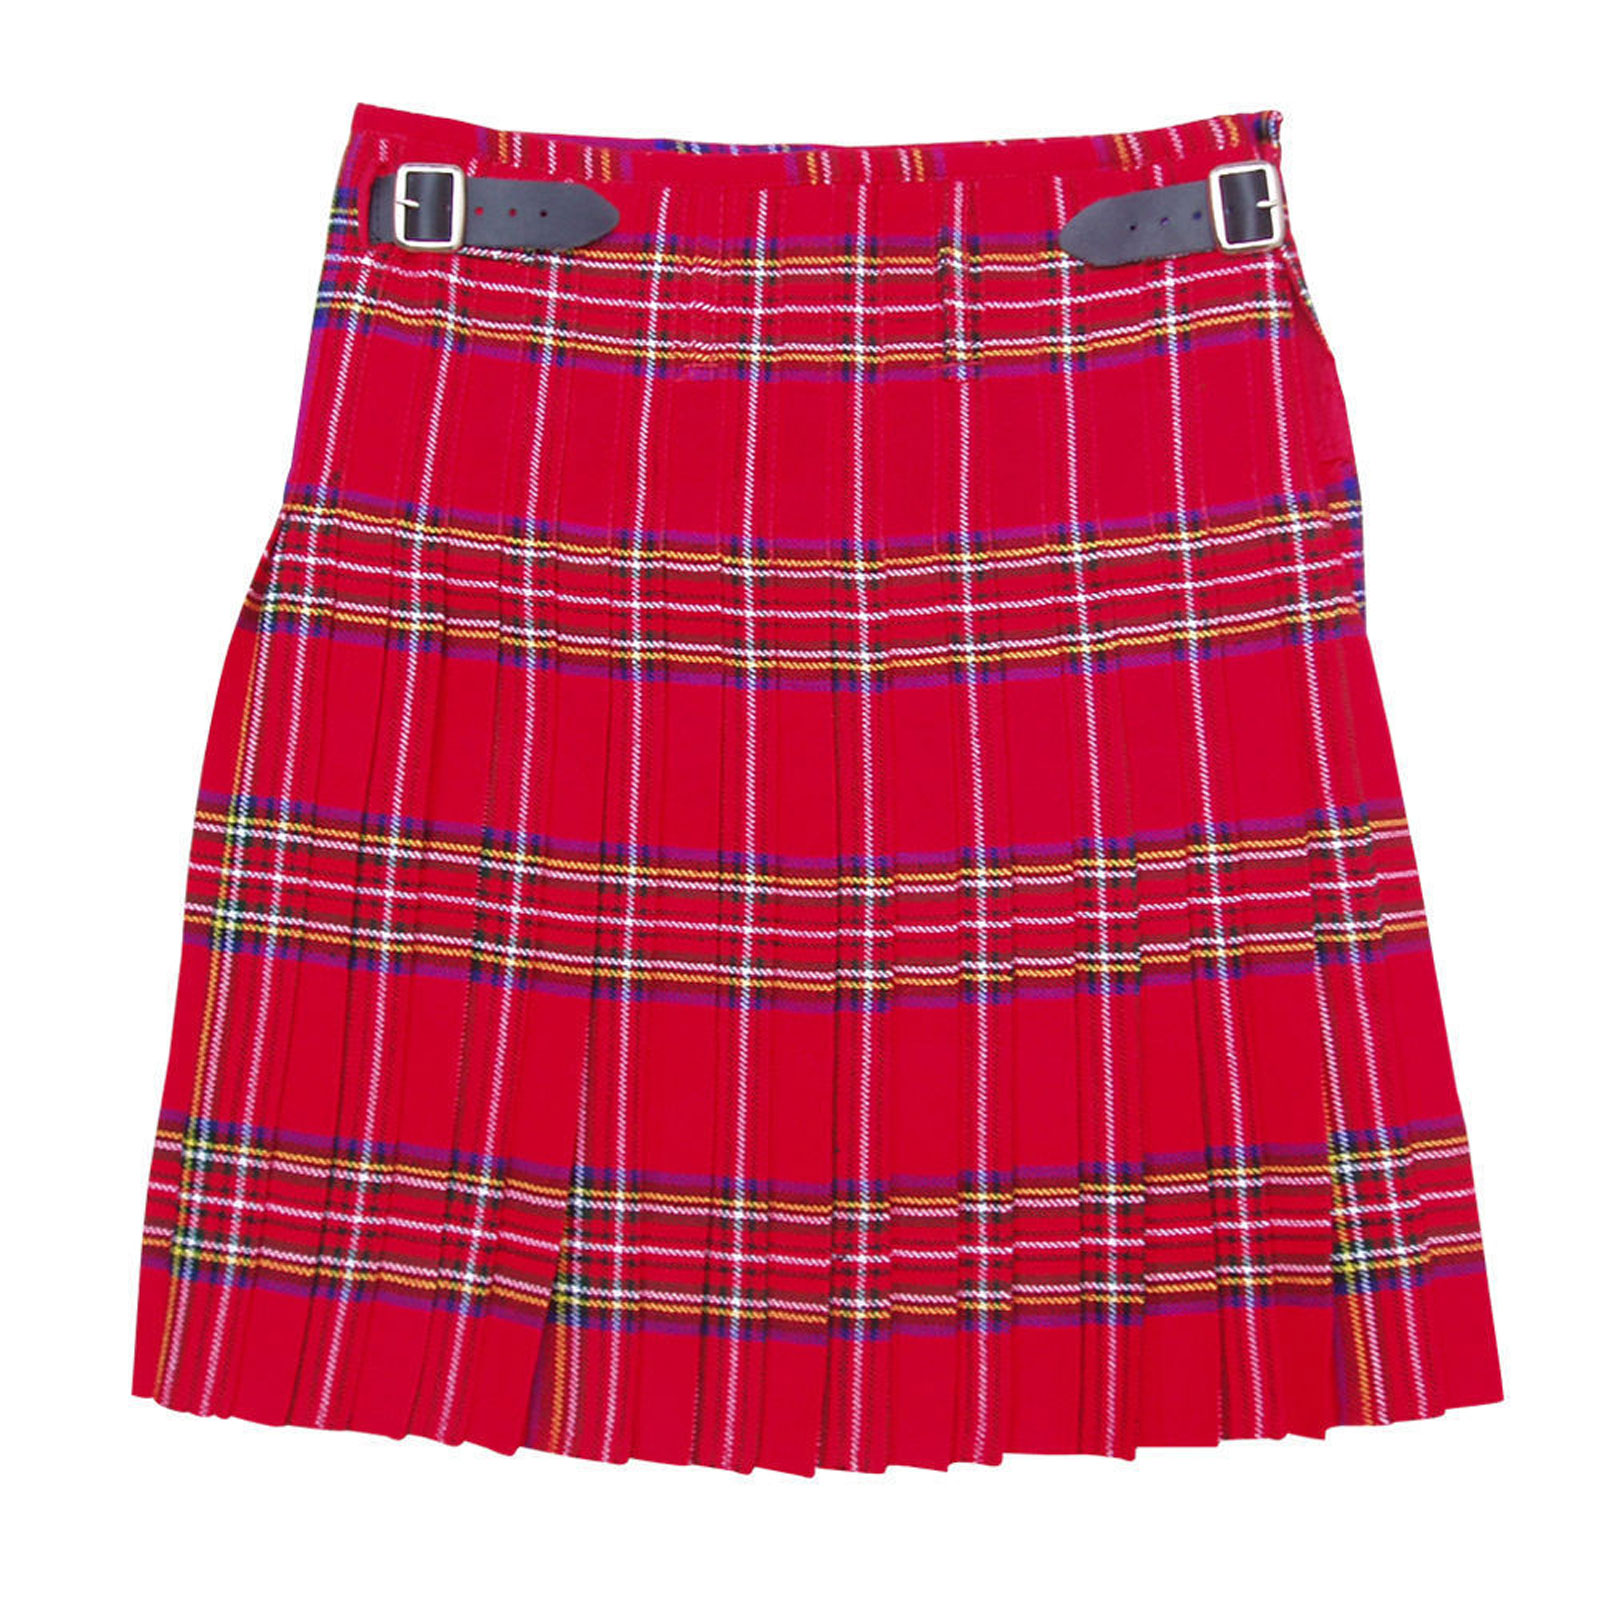 scottish-5-yard-acrylic-highland-casual-kilt-royale-stewart-spread